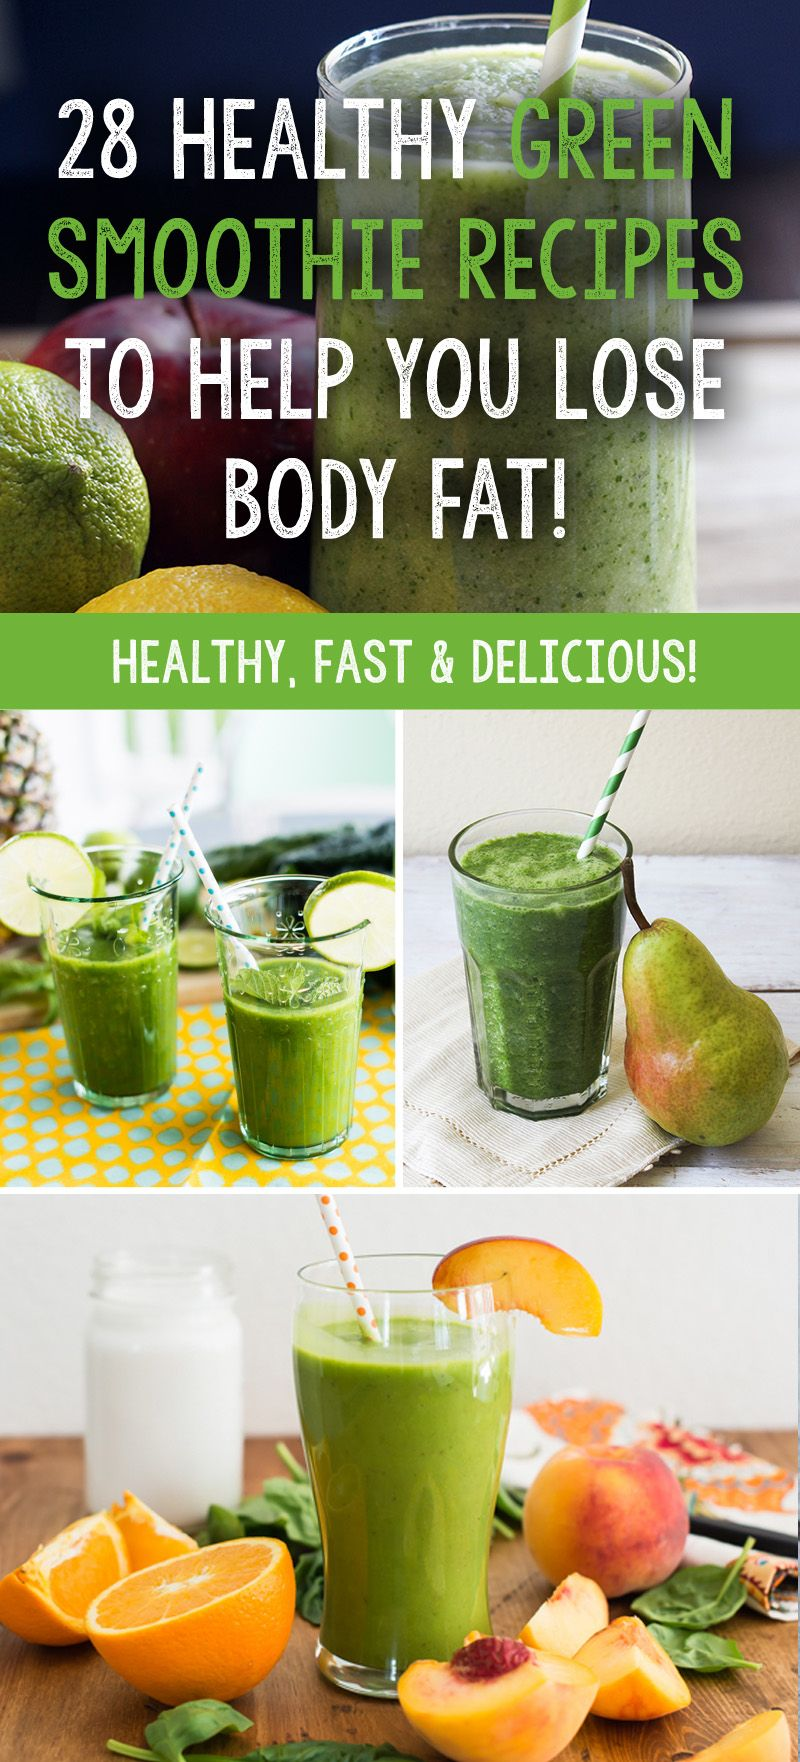 Help You Lose Body Fat 101